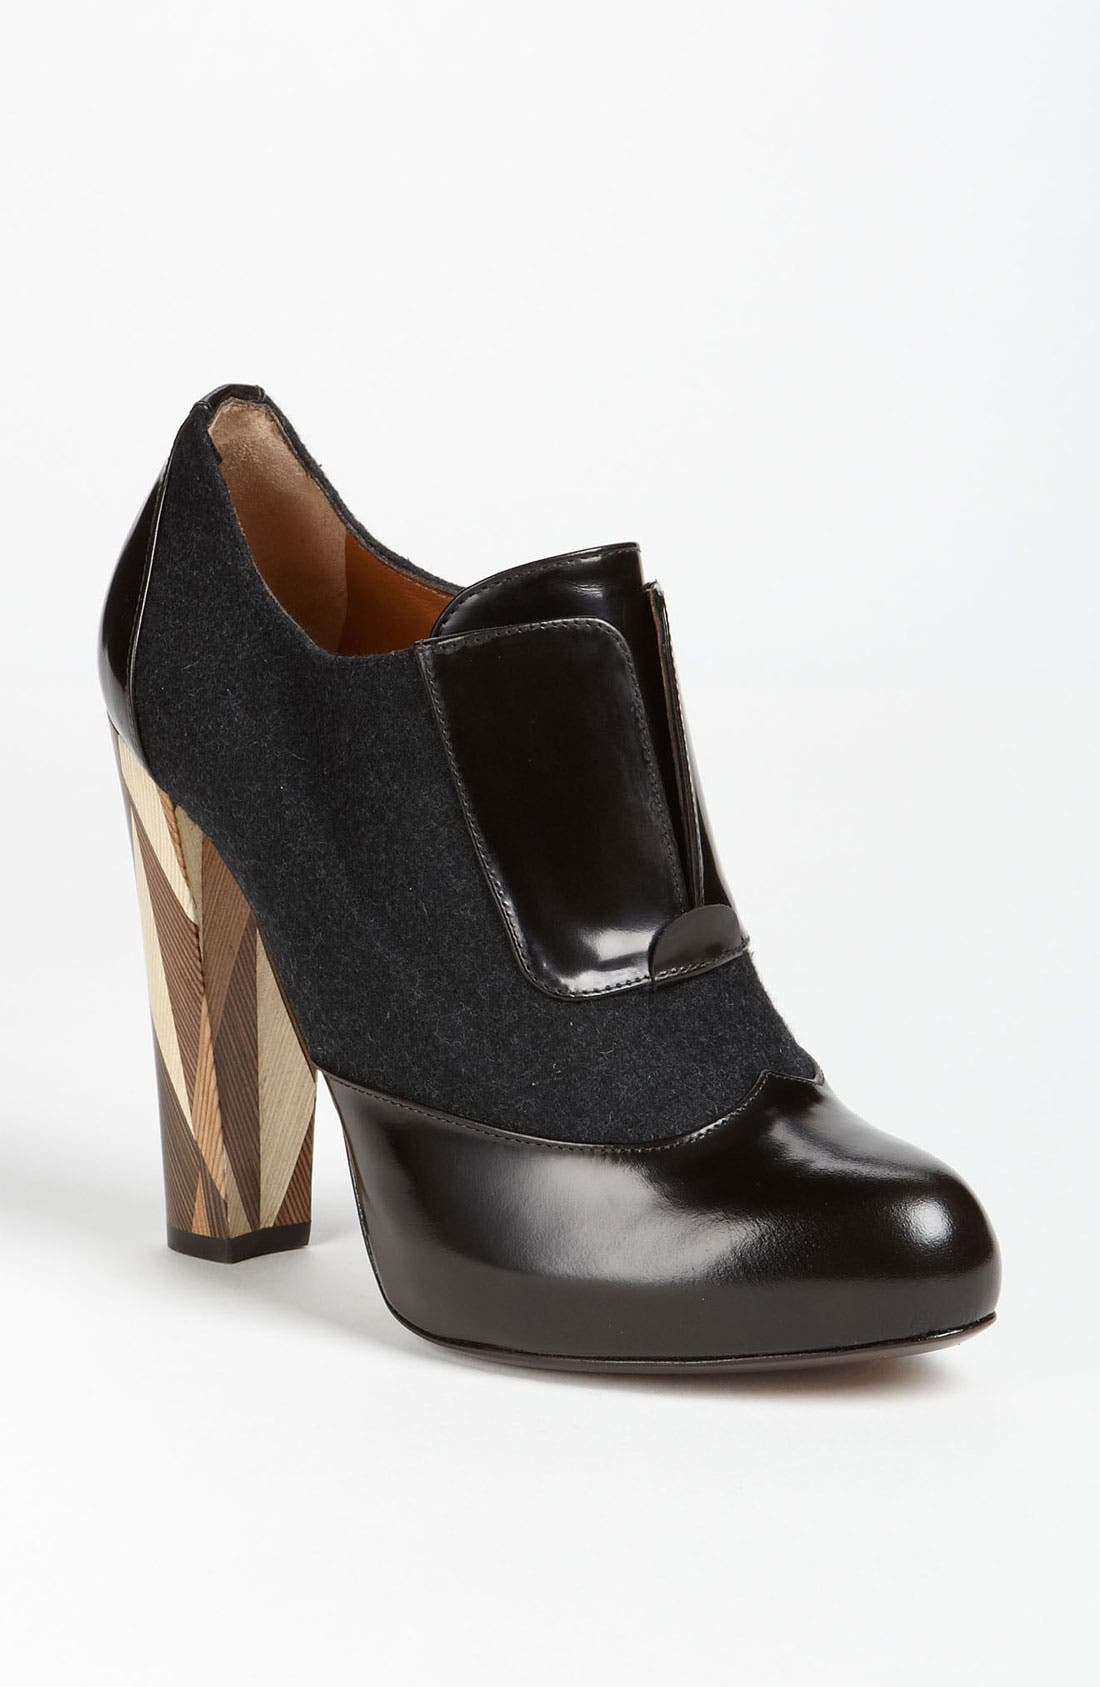 Alternate Image 1 Selected - Fendi 'Wuthering Heights' Wood Heel Bootie